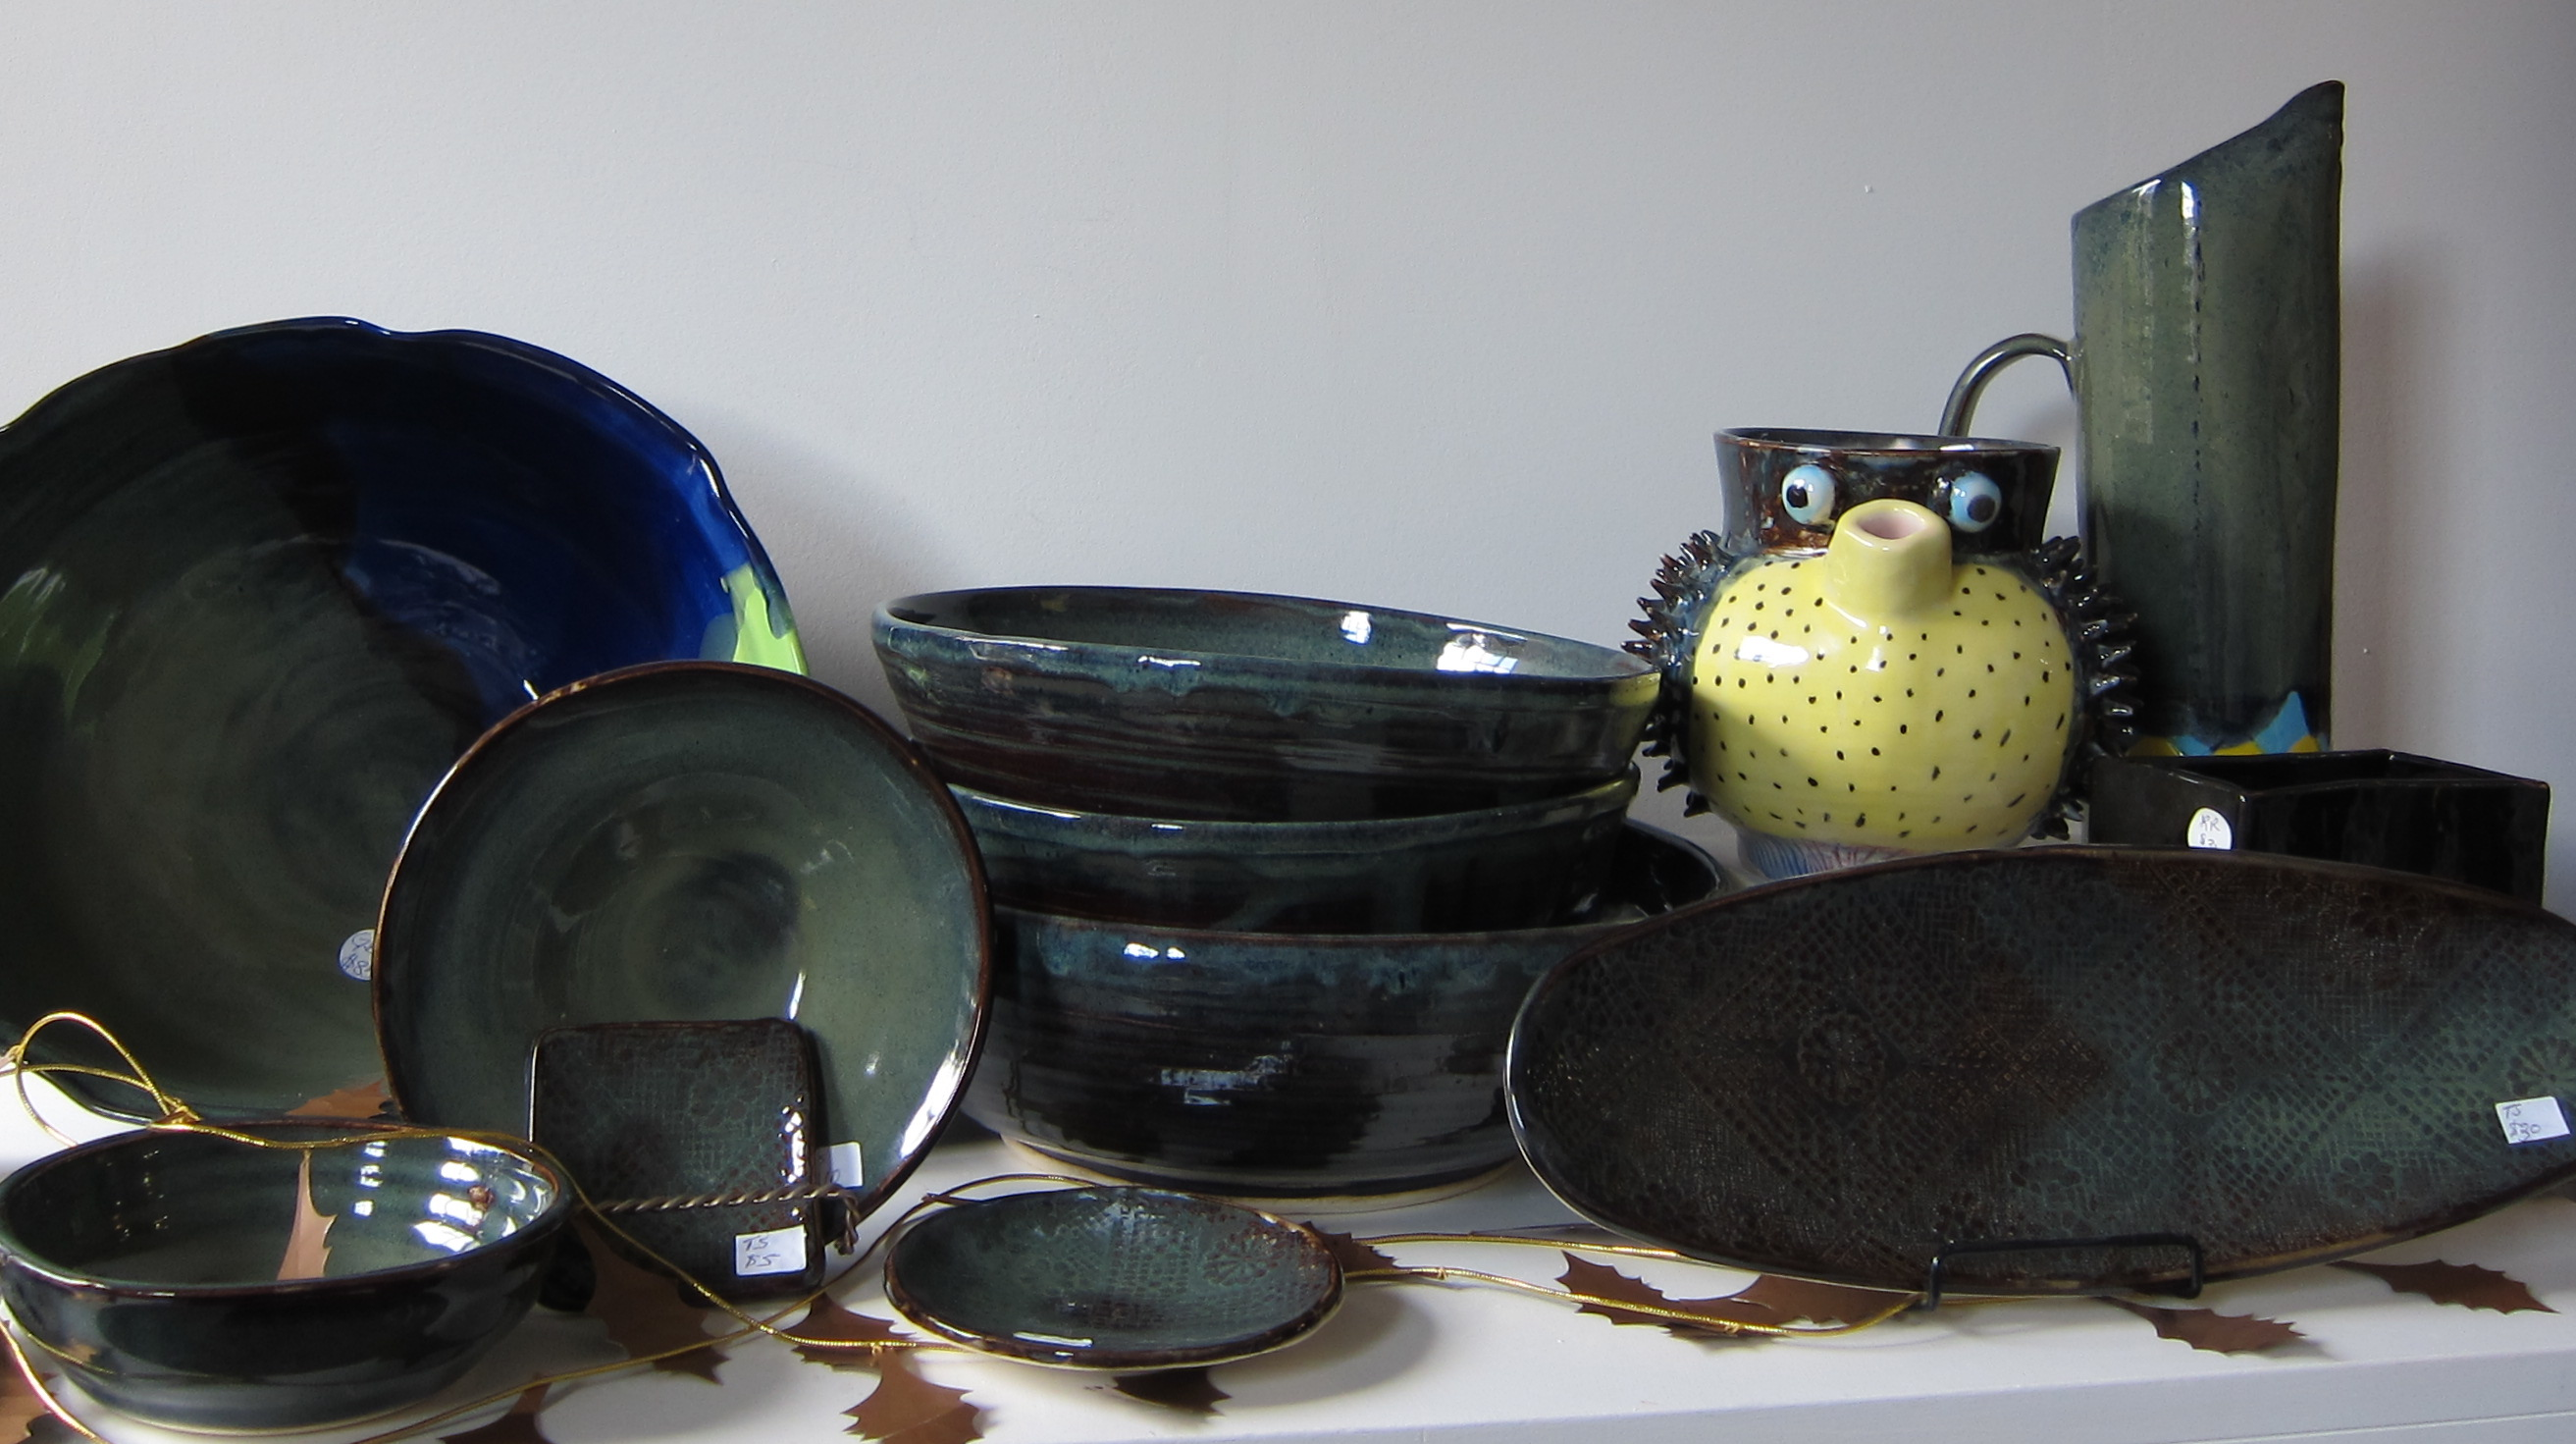 Hand made bowls, mugs, and a puffer fish sculpture, all made by low-income women, can be seen.